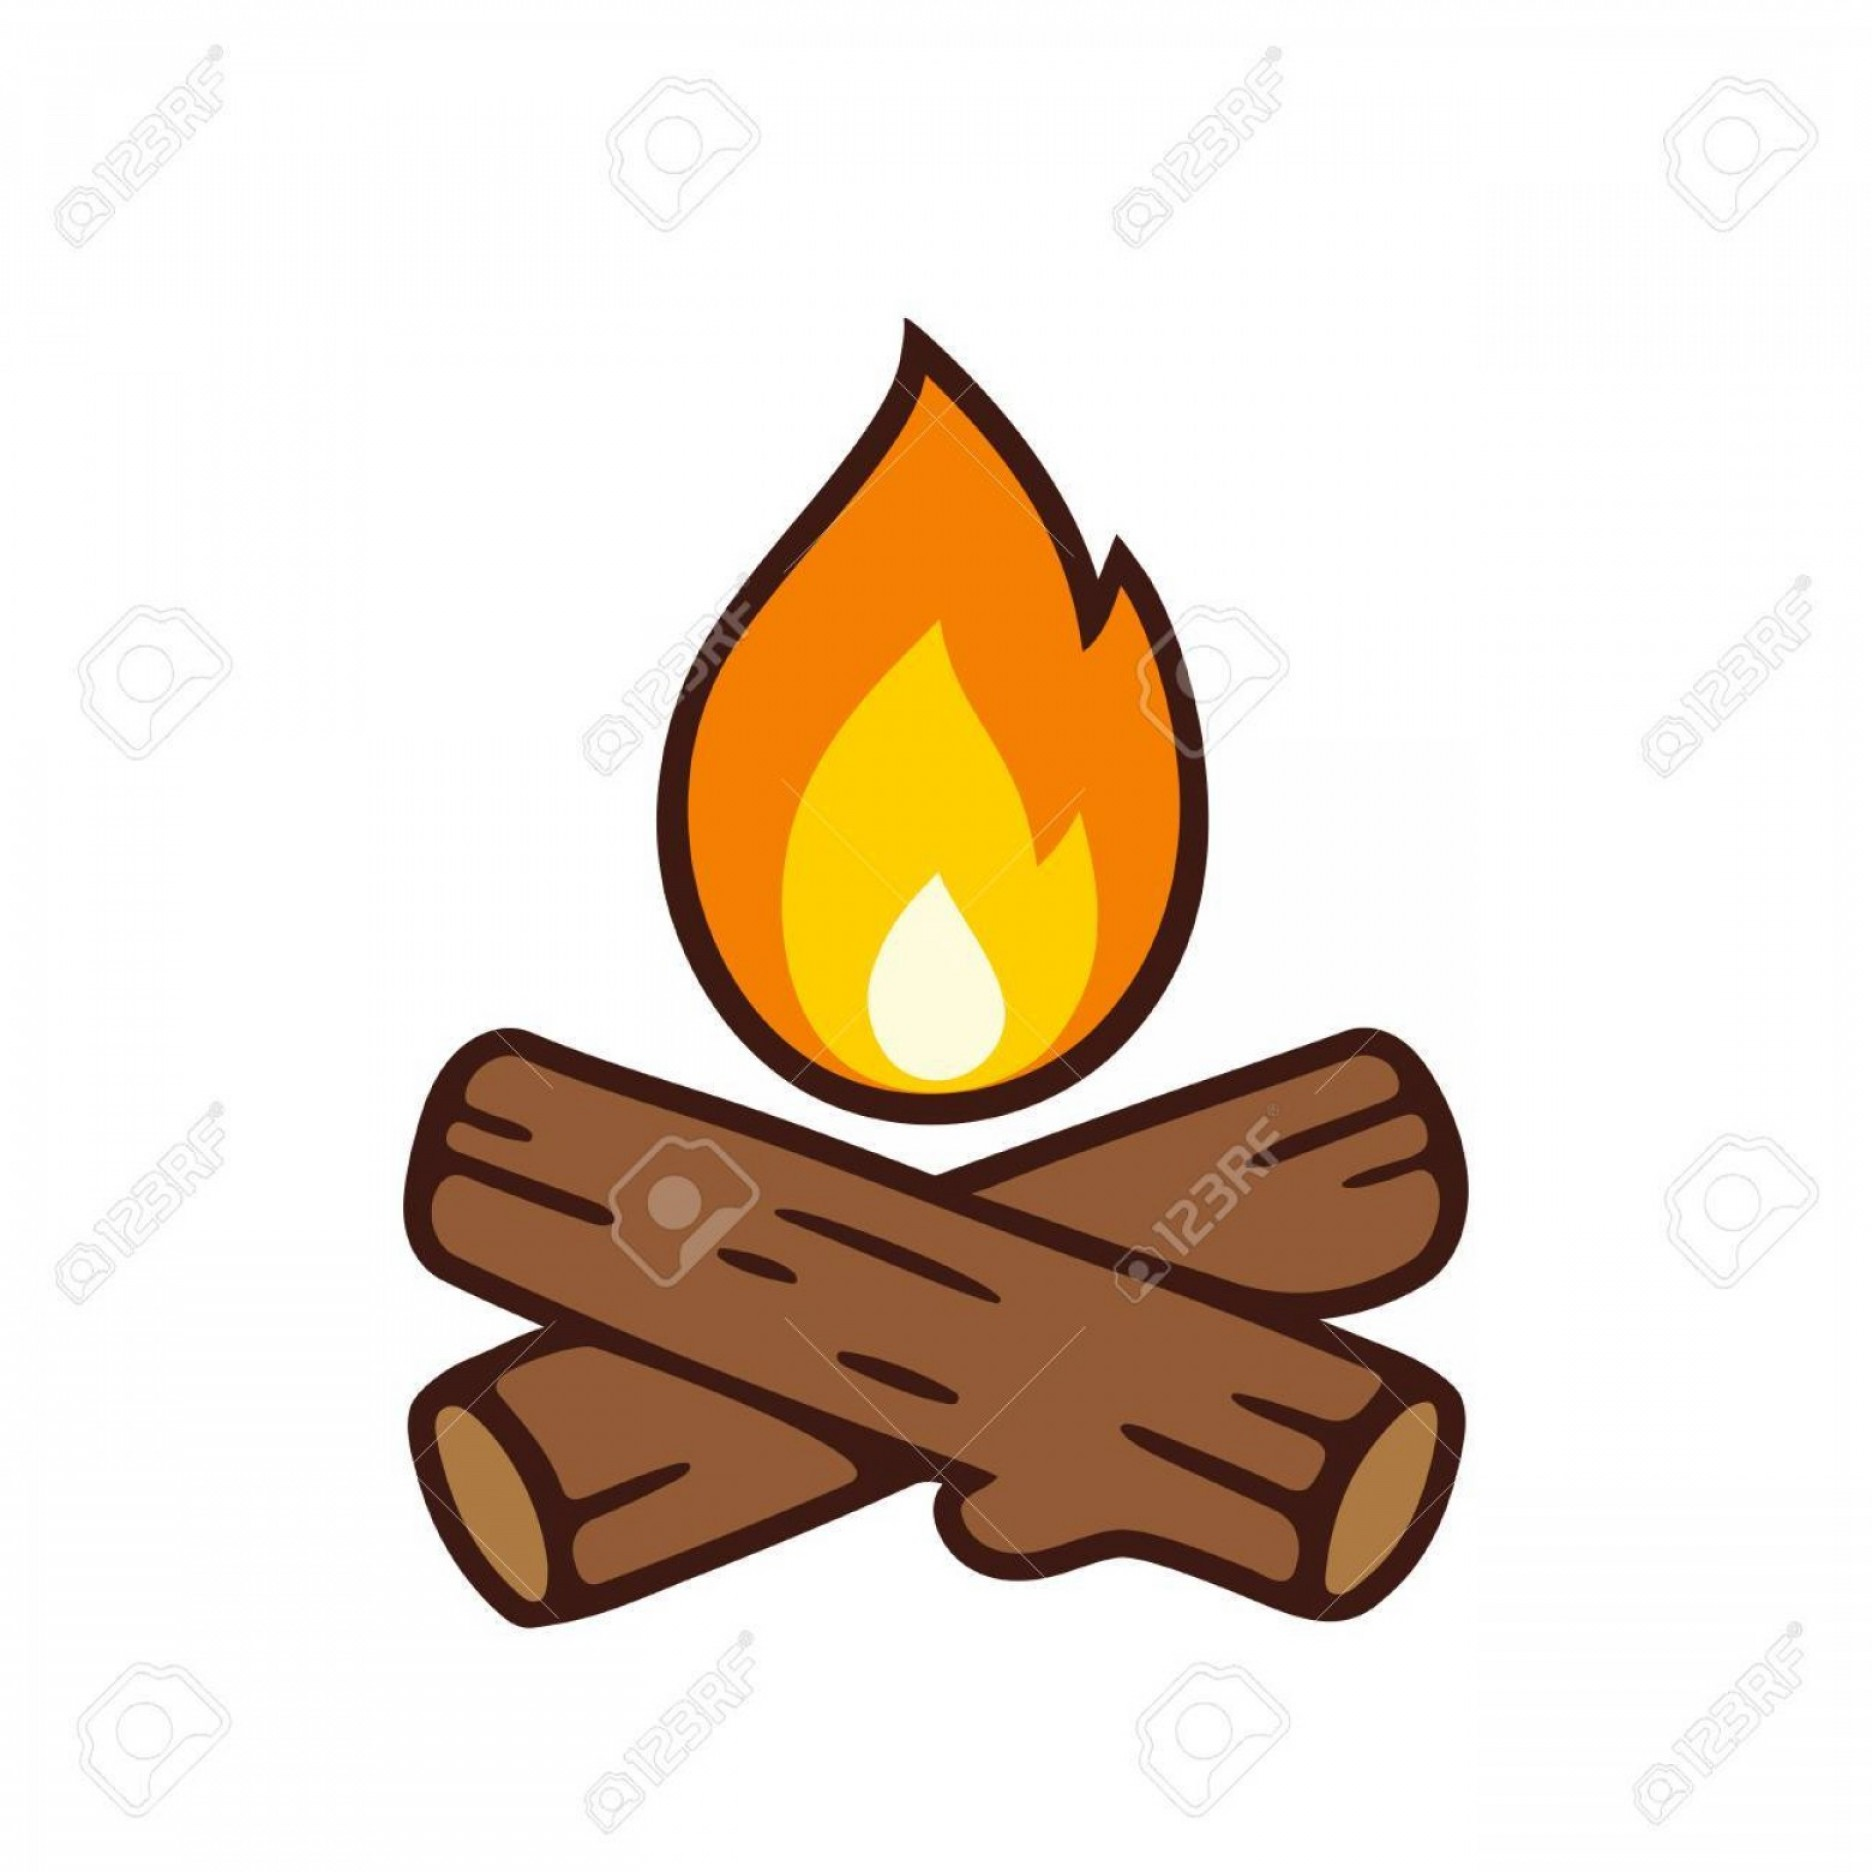 Cartoon Fire Flames Vector: Photostock Vector Campfire Vector Icon Illustration Isolated On White Crossed Logs And Fire Flame In Cartoon Style